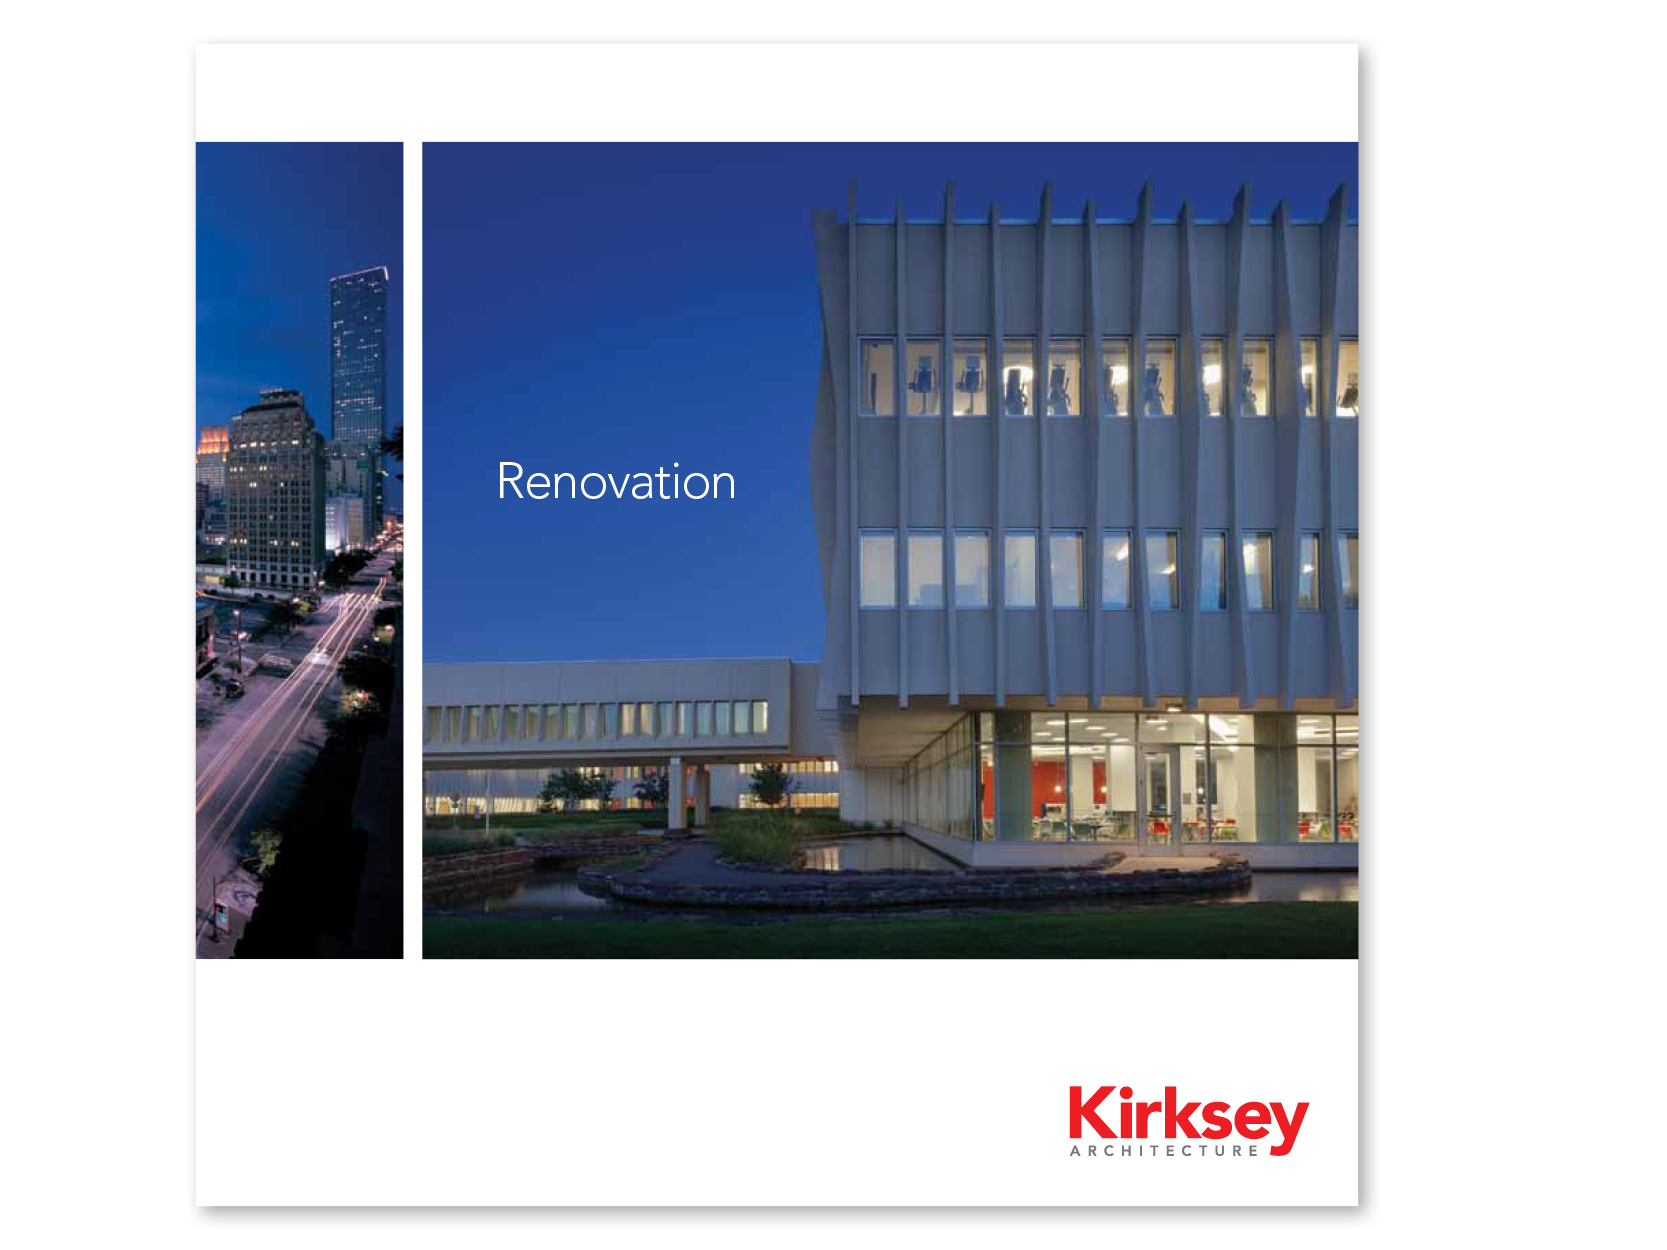 Preview of the resource library item for We're Kirksey Renovation